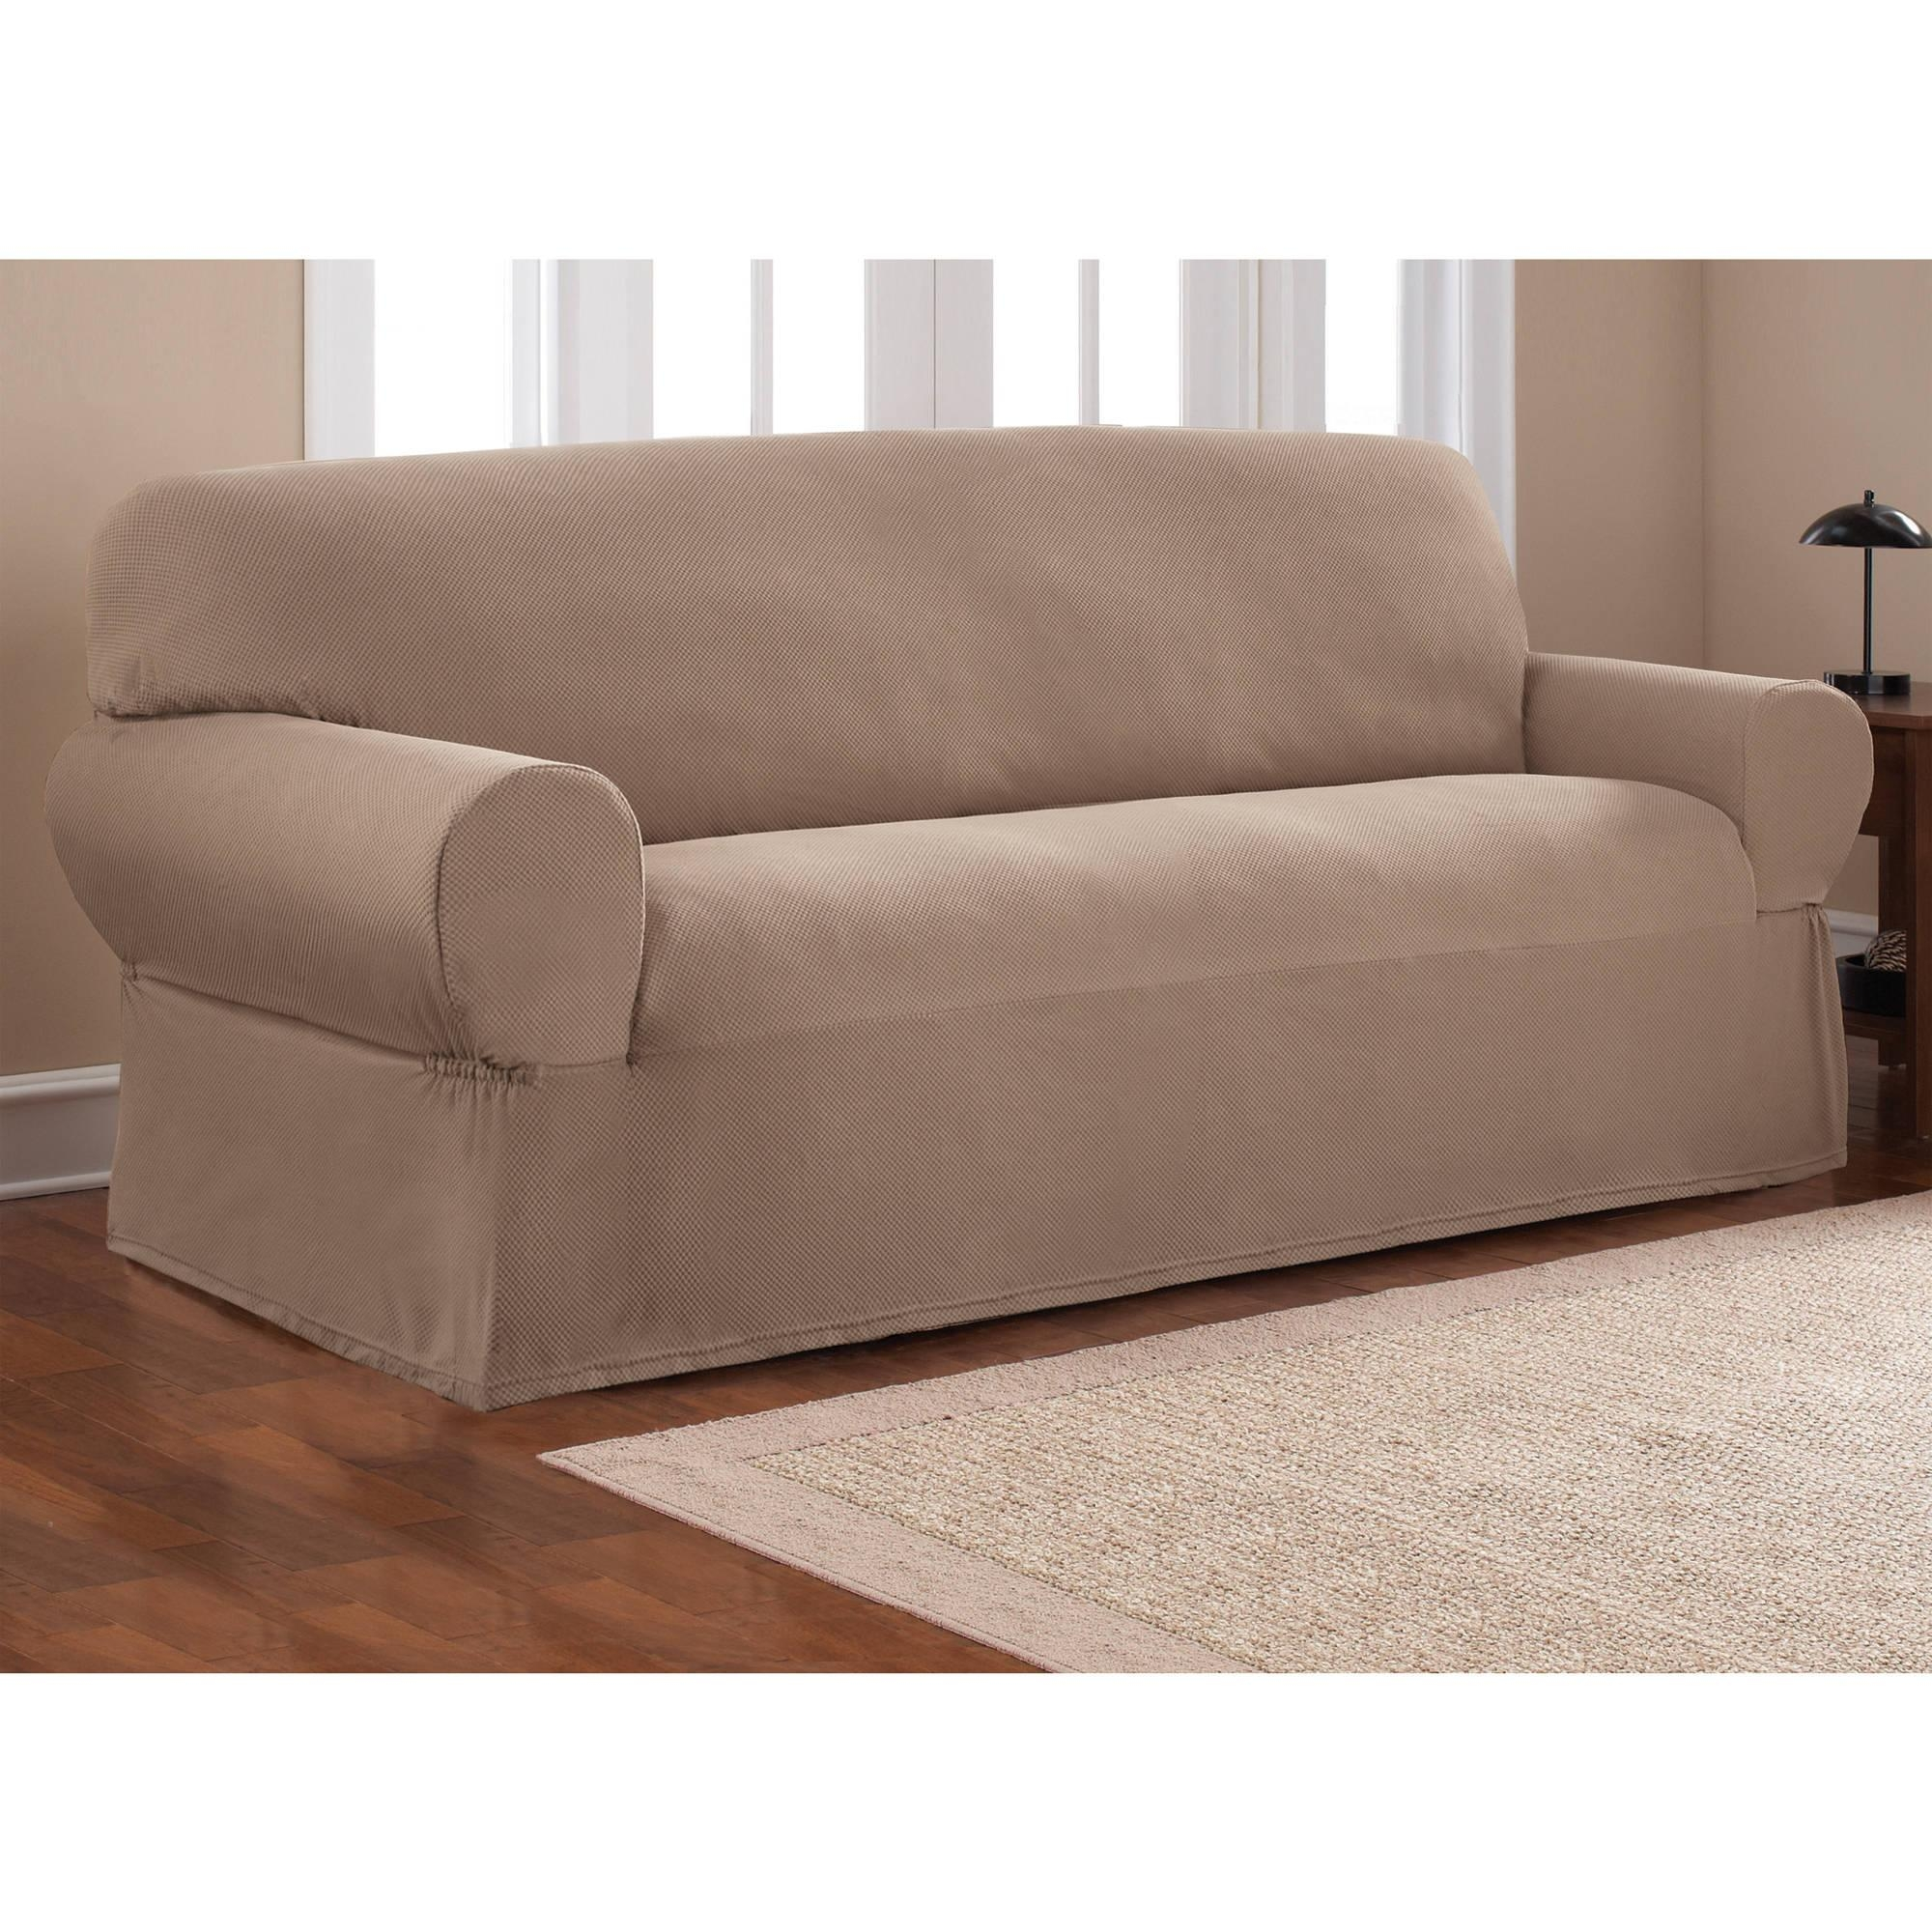 Mainstays 1 Piece Stretch Fabric Sofa Slipcover – Walmart Inside Loveseat Slipcovers T Cushion (Image 14 of 20)